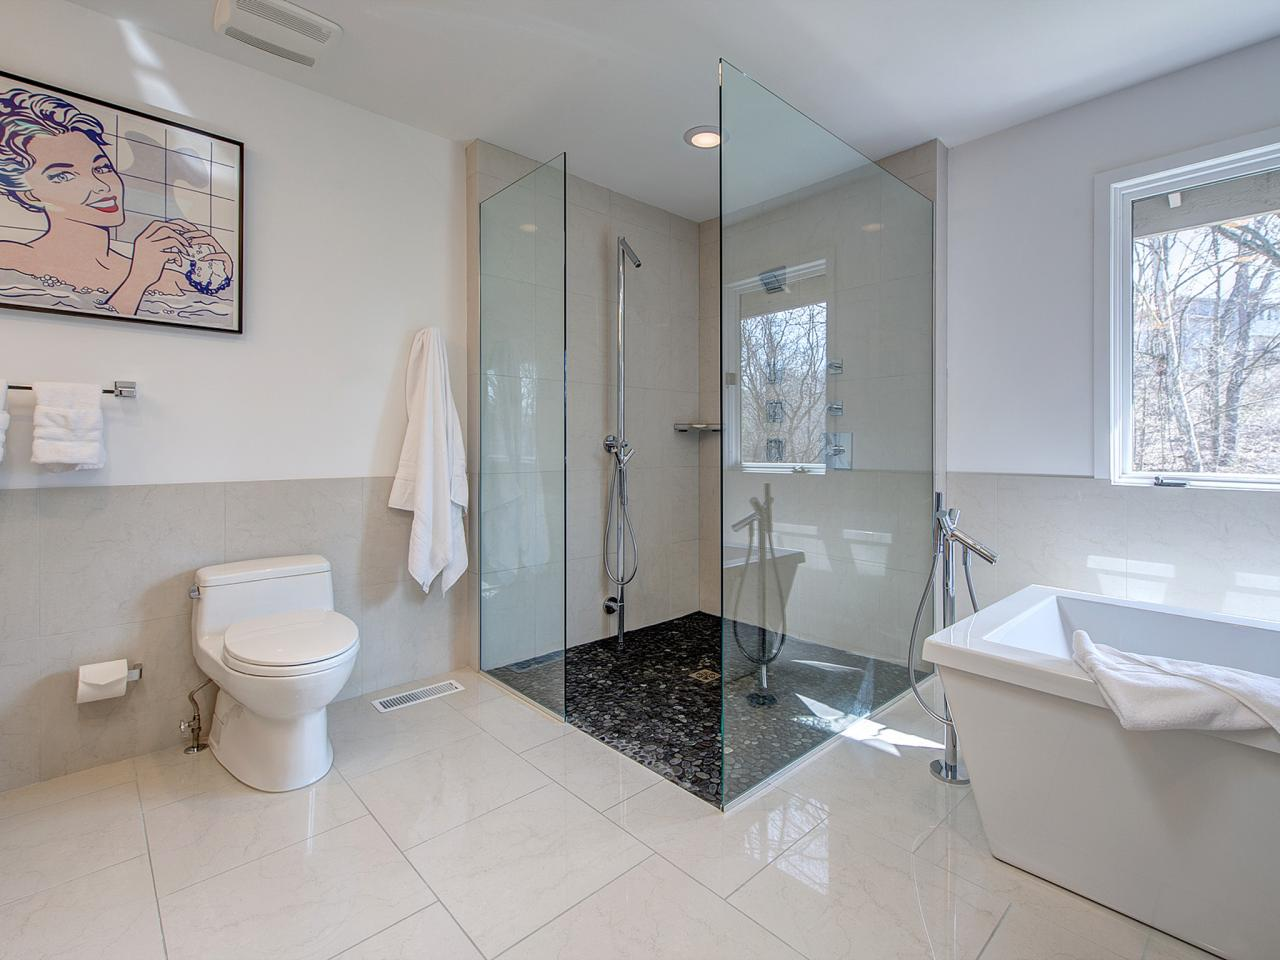 Use These Bathroom Decorating Ideas For Your Home: When To Use Tempered Safety Glass